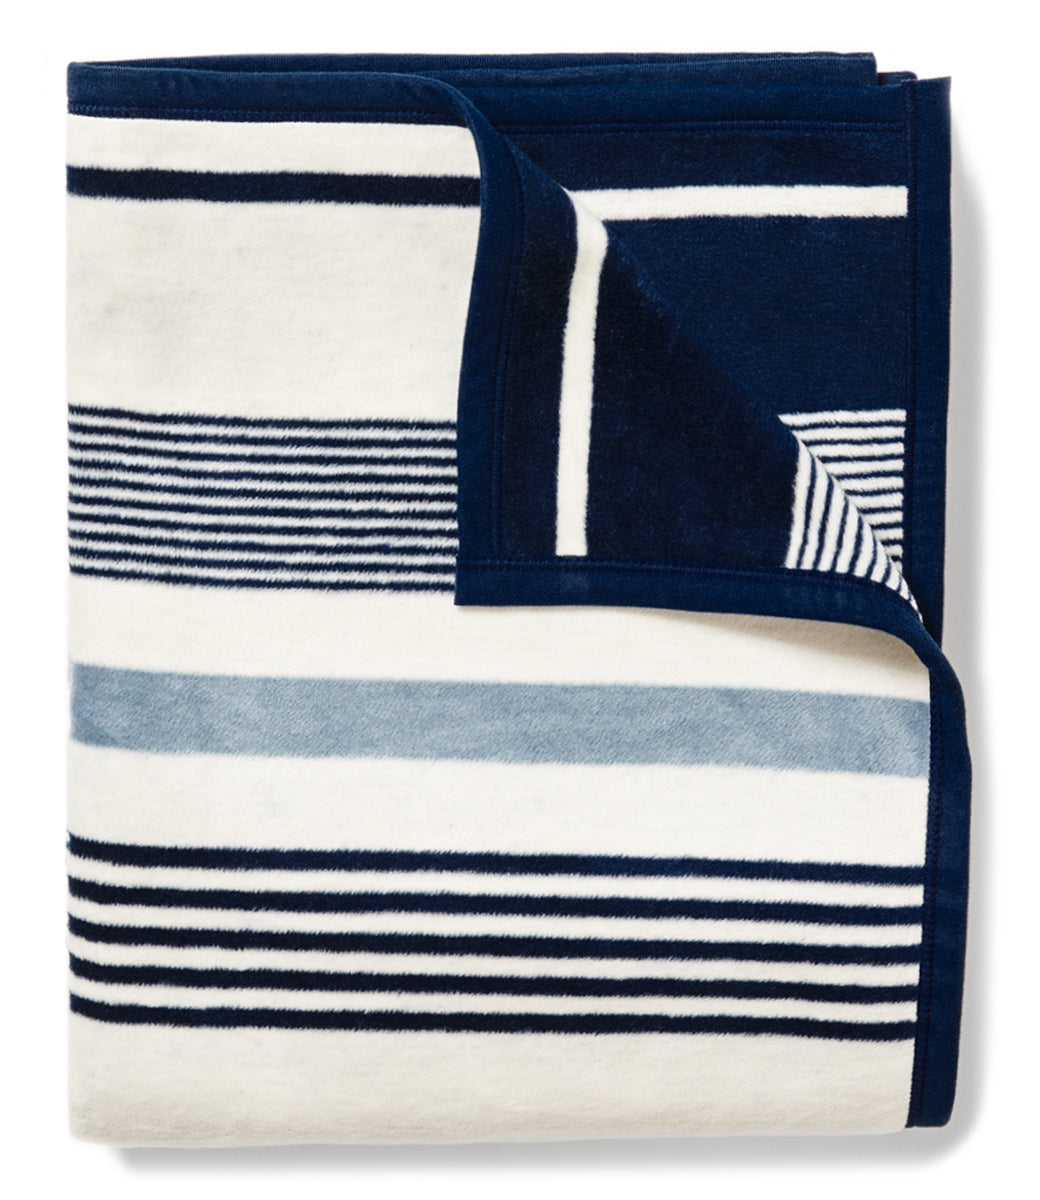 Shop Navy Bleu Stripes Blanket